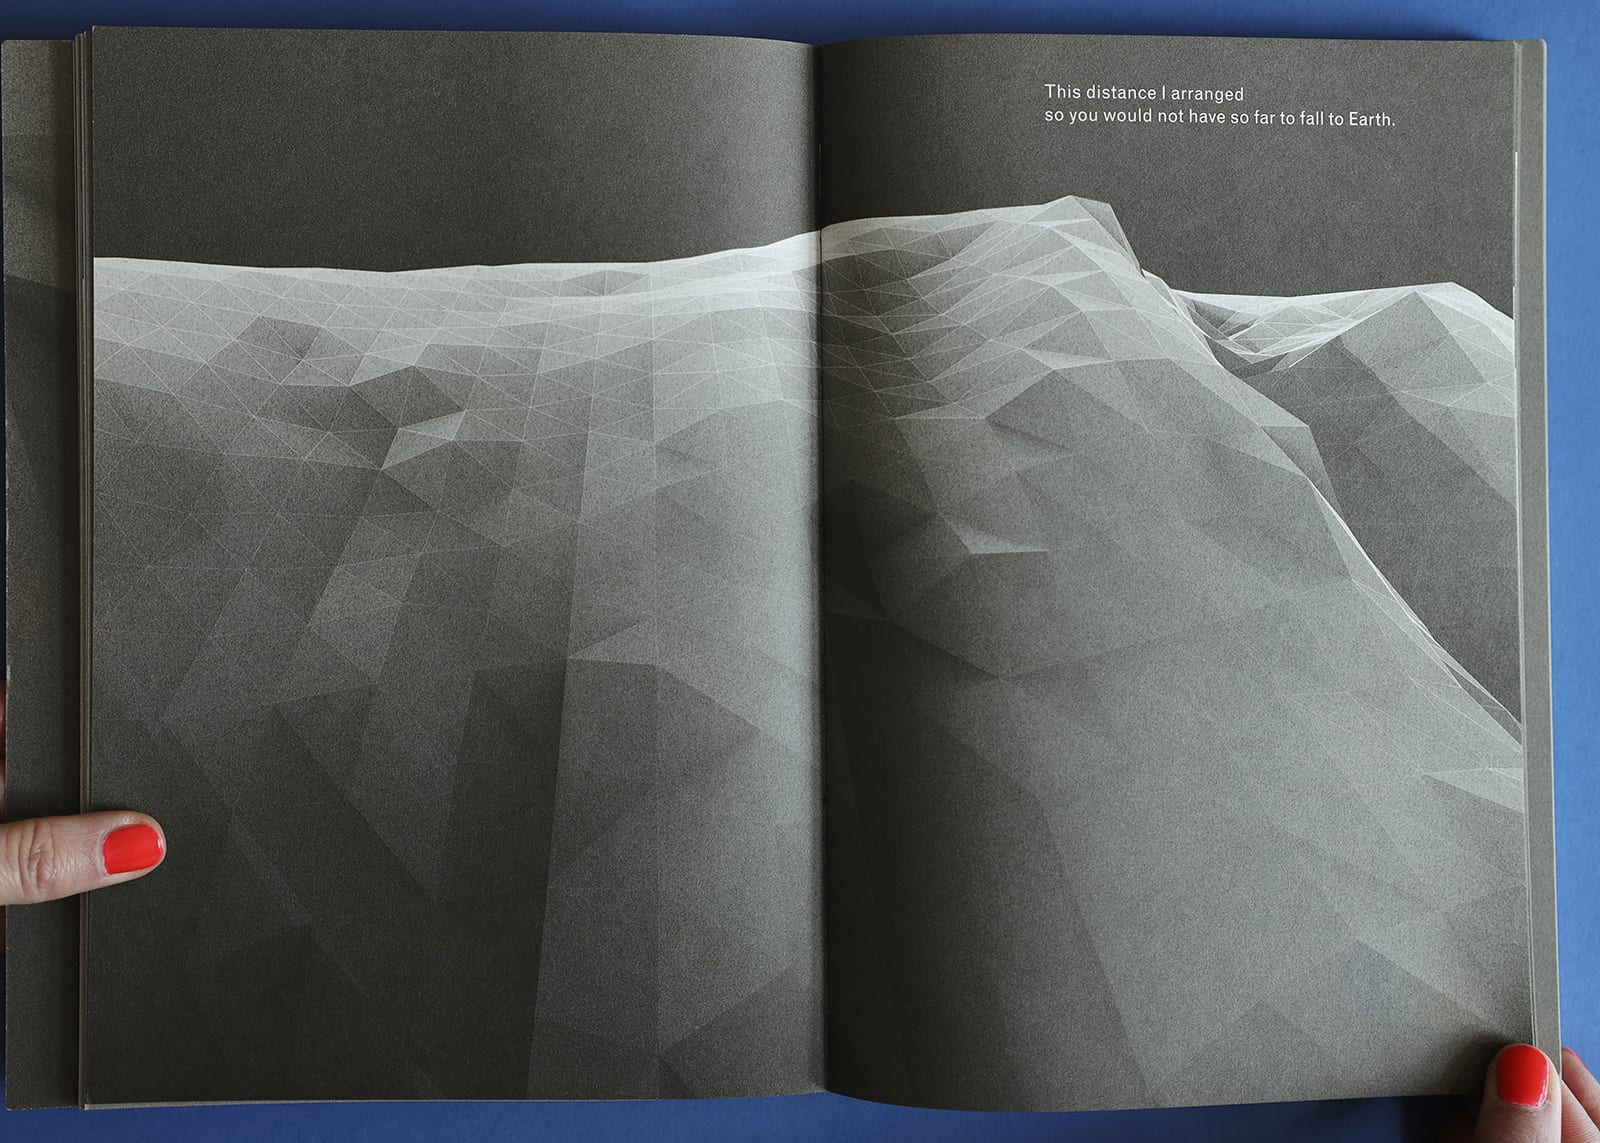 """Open-book spread of Imaginary Explosions, page 35. Above black-and-white graphic of mountain topography, text reads, """"This distance I arranged so you would not have so far to fall to Earth."""""""